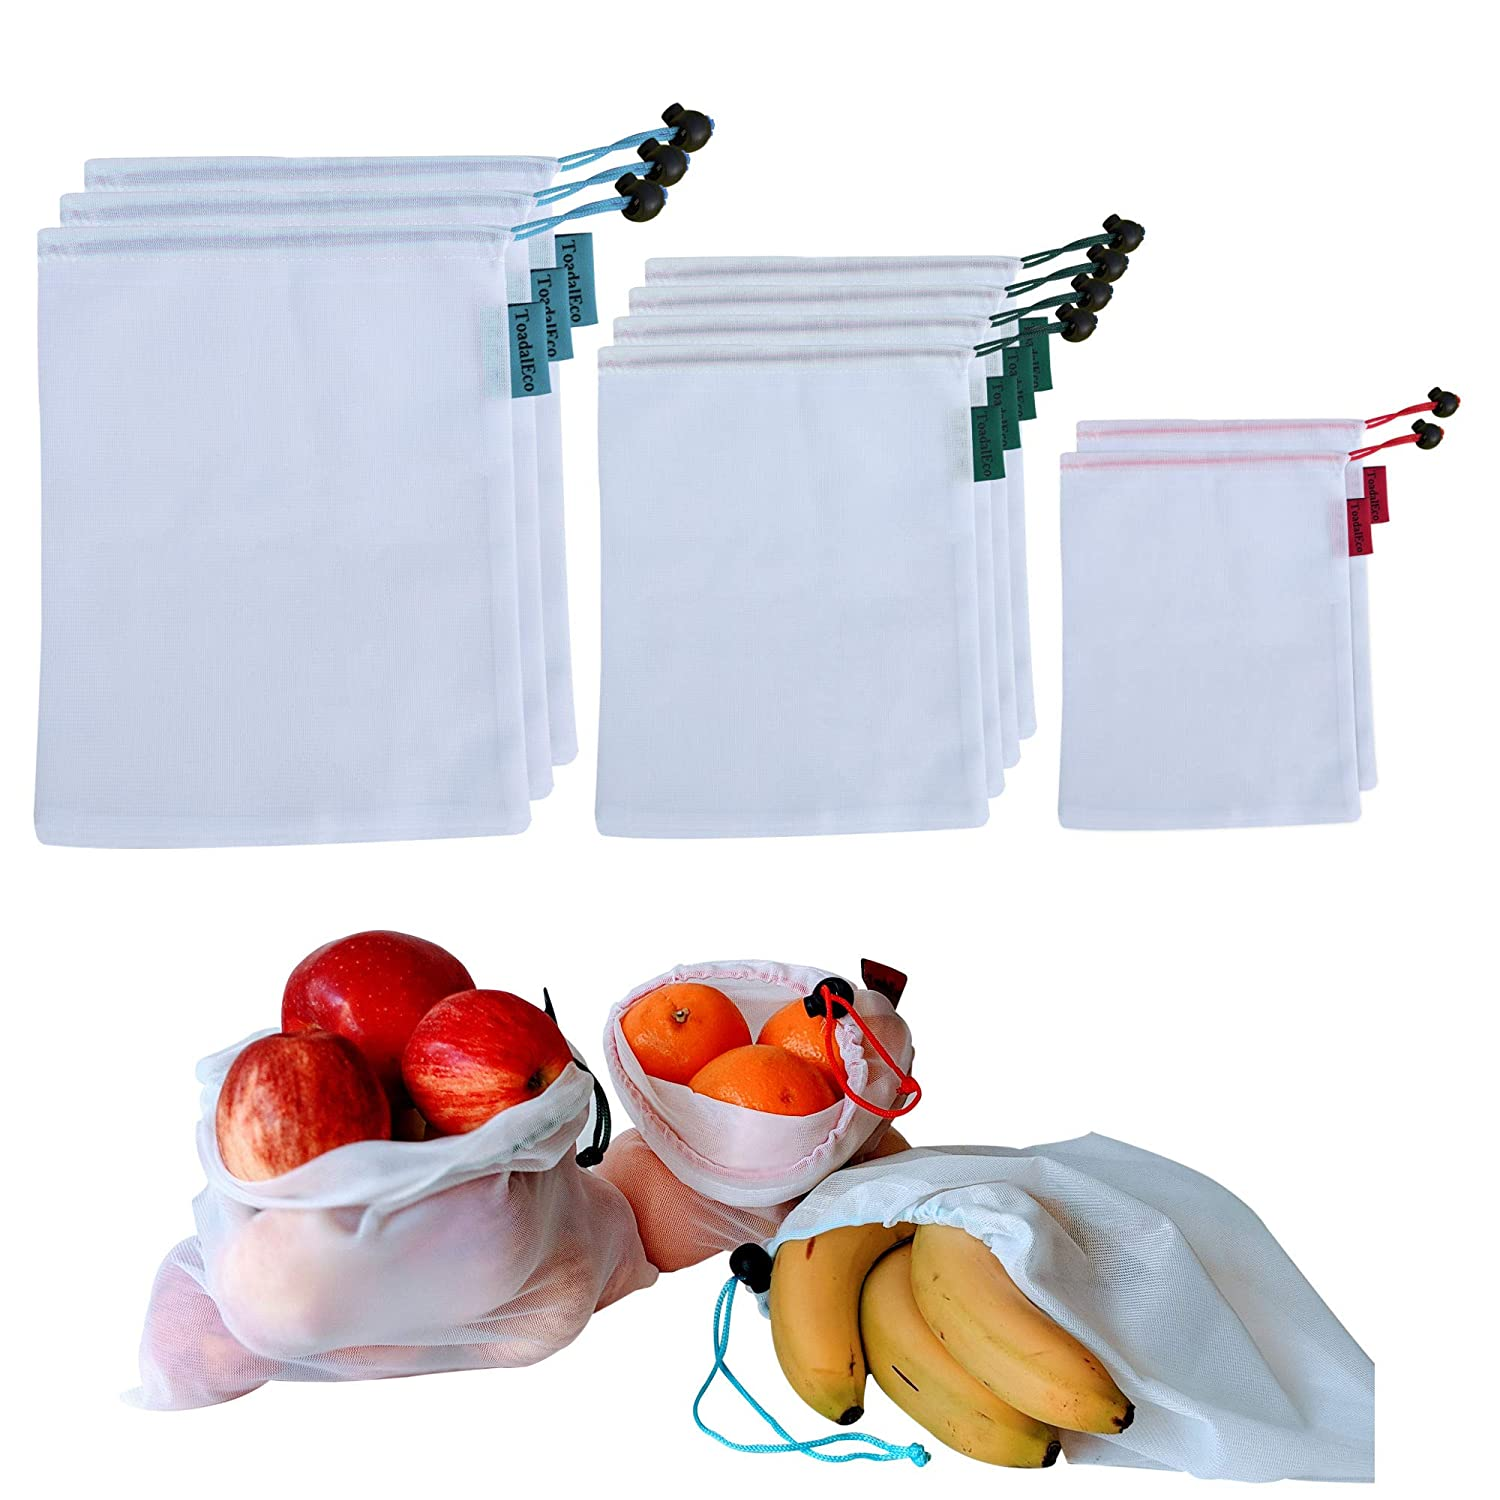 Reusable Produce Bags Washable Grocery Mesh Bags Set of 9 Net Bags for Storage in Large, Medium and Small Breathable and Lightweight Veggies Bags with Grocery Shopping Bag